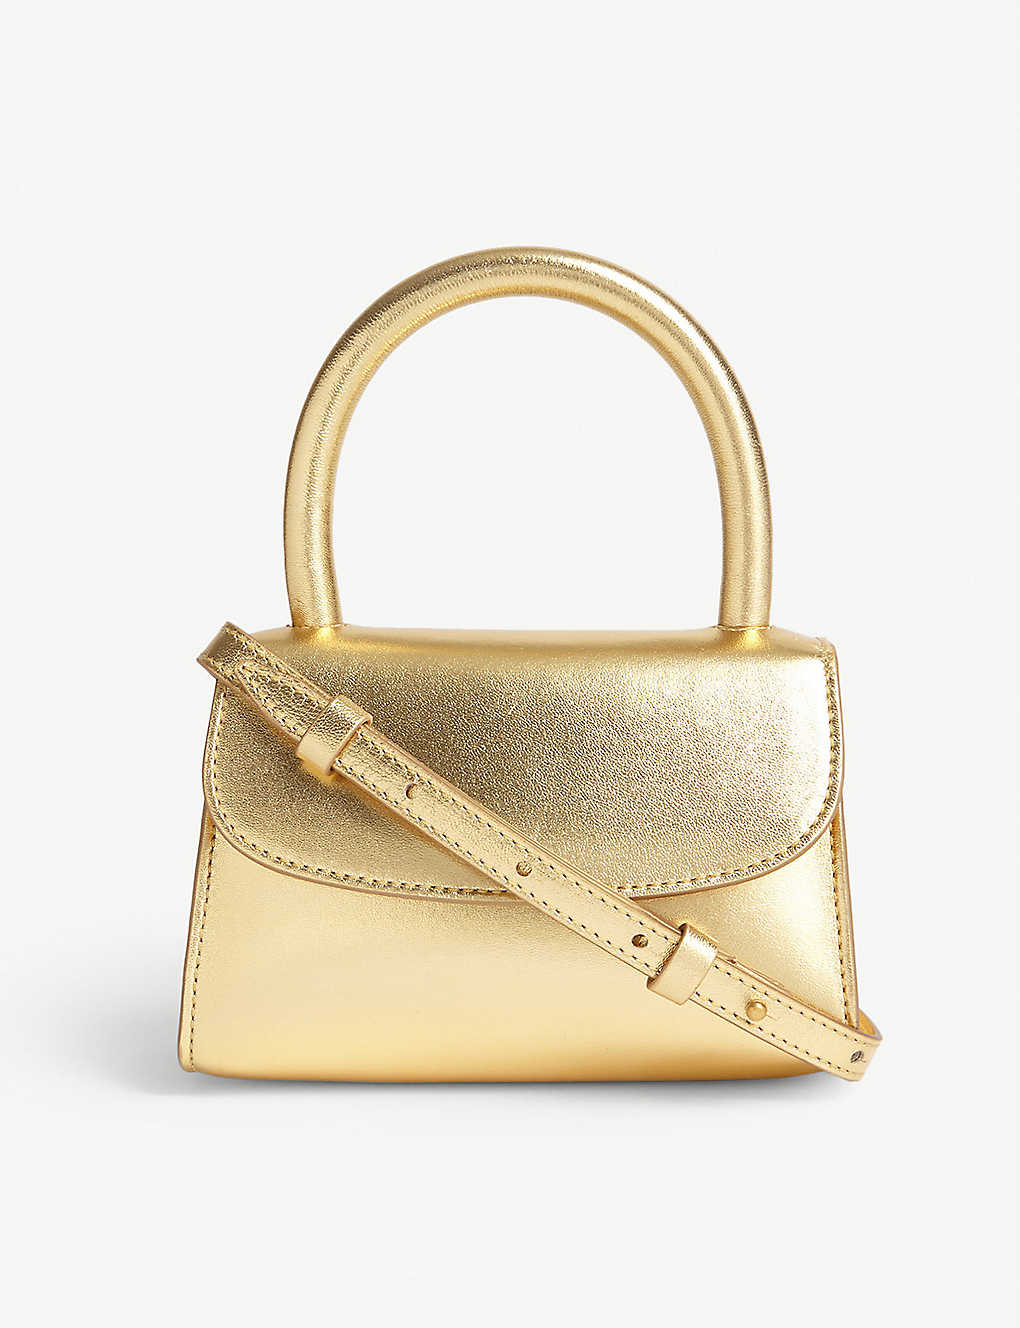 BY FAR: Metallic leather mini bag